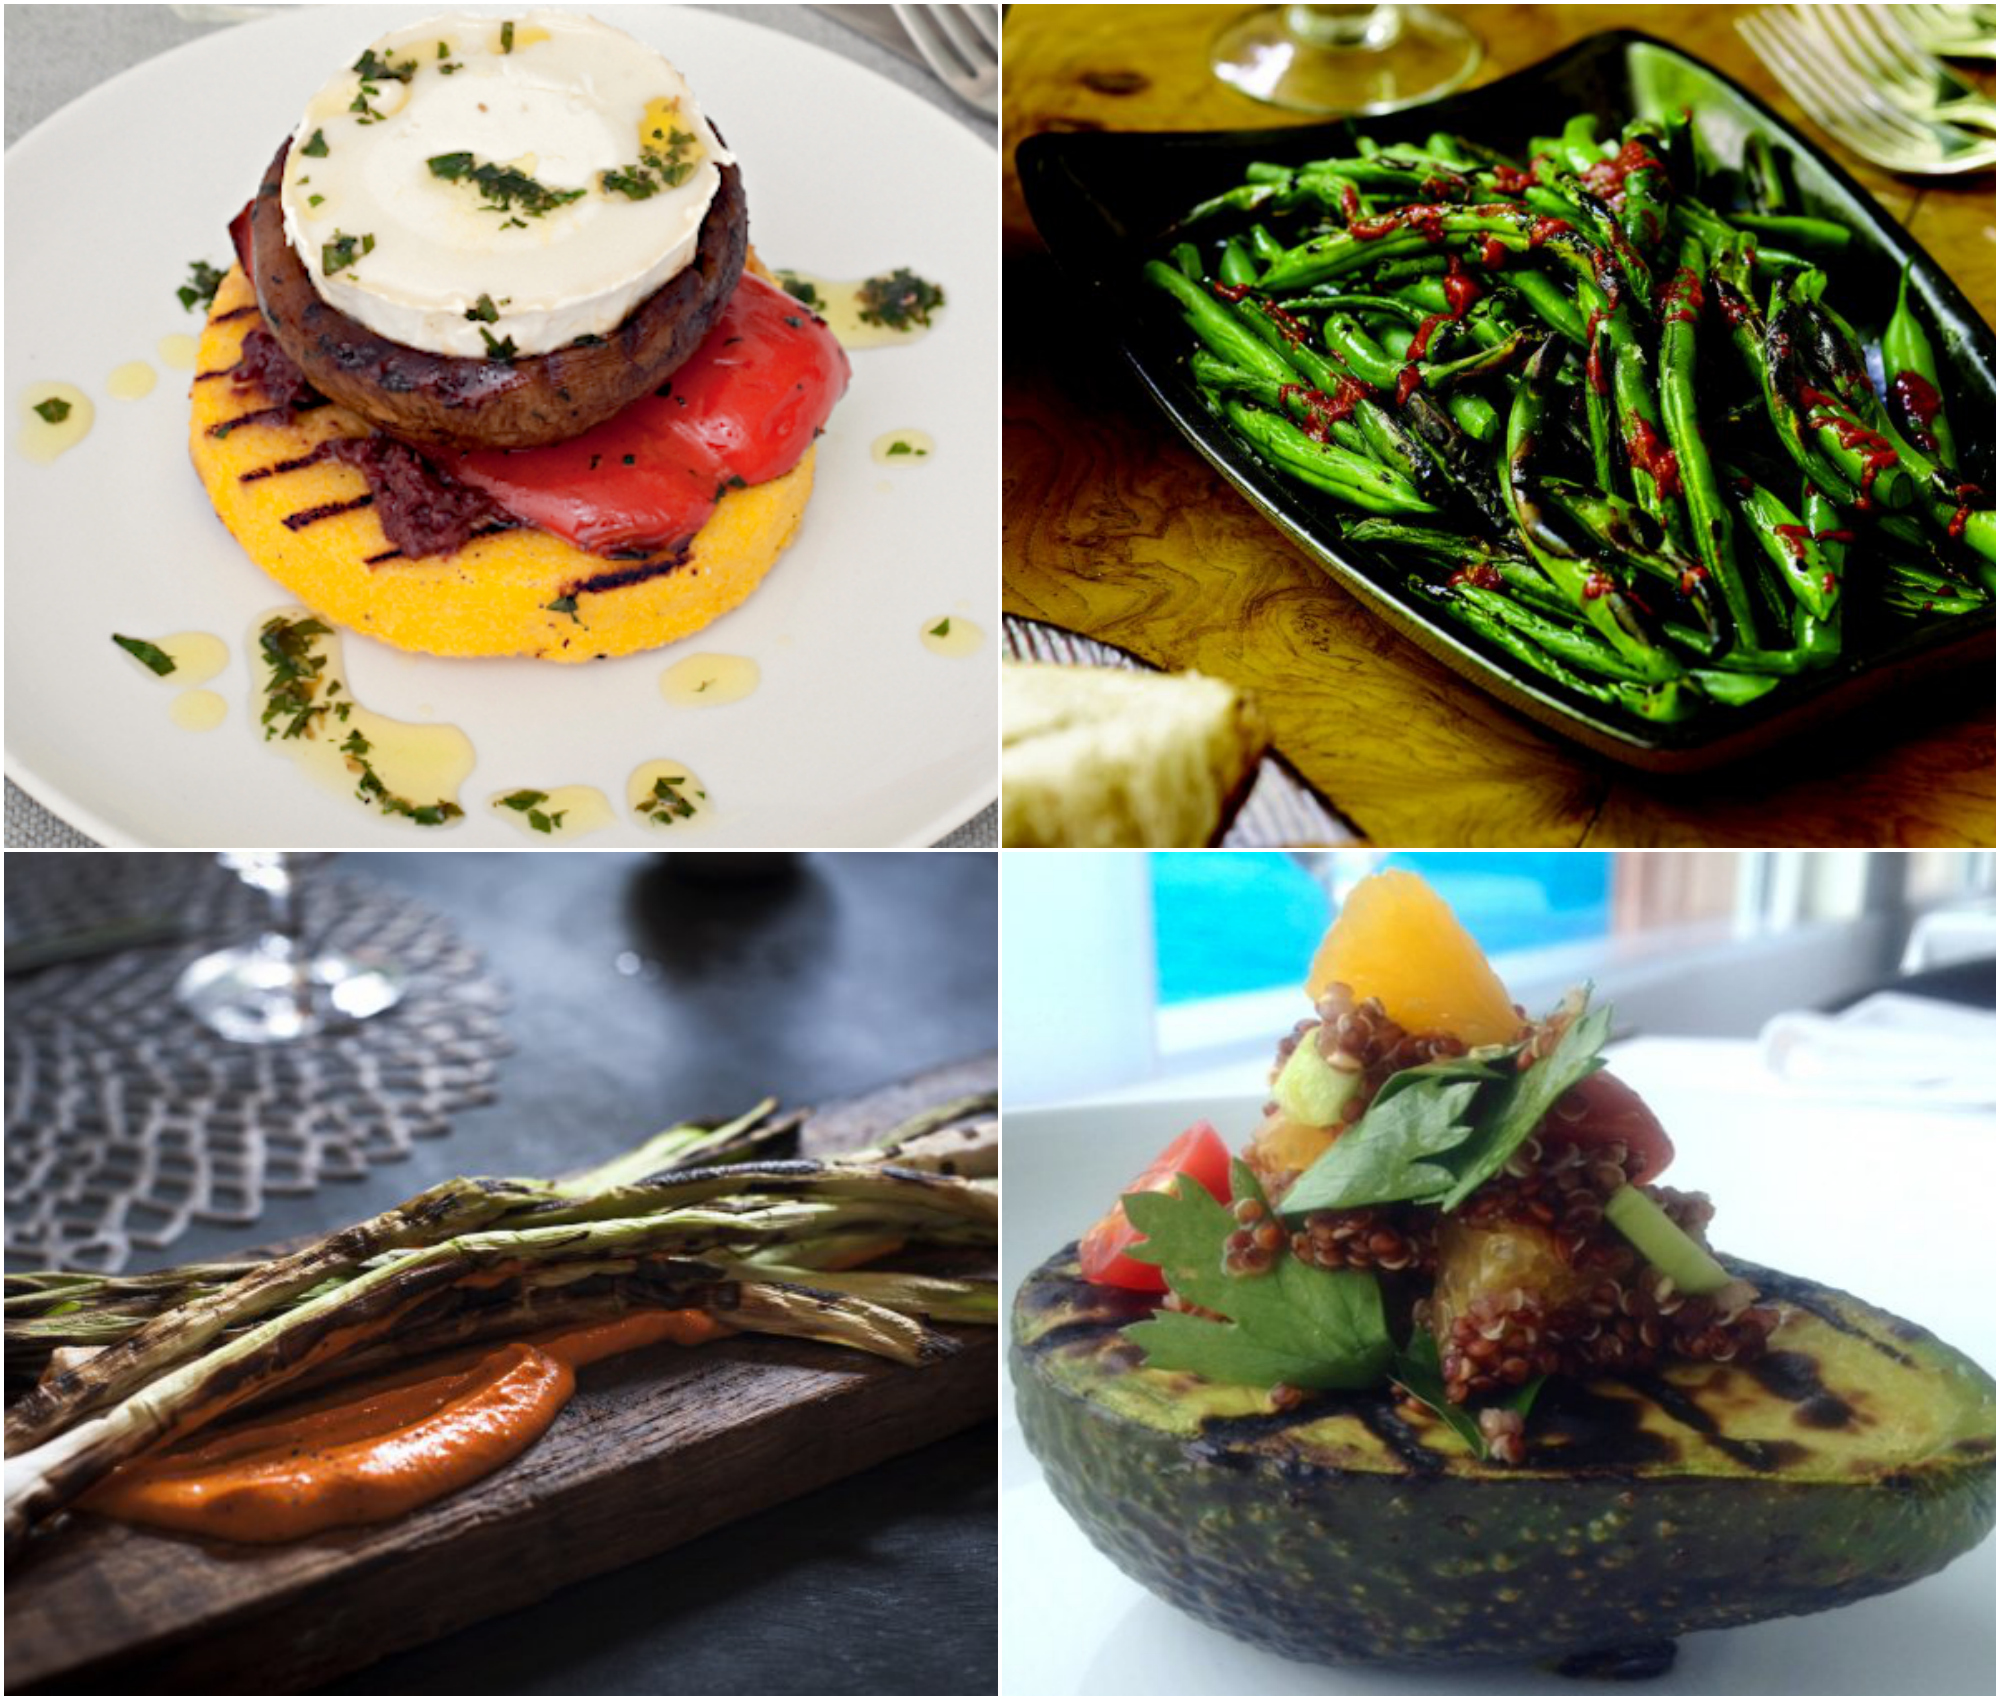 9 Ideas For Dinner Tonight: Grilled Vegetables